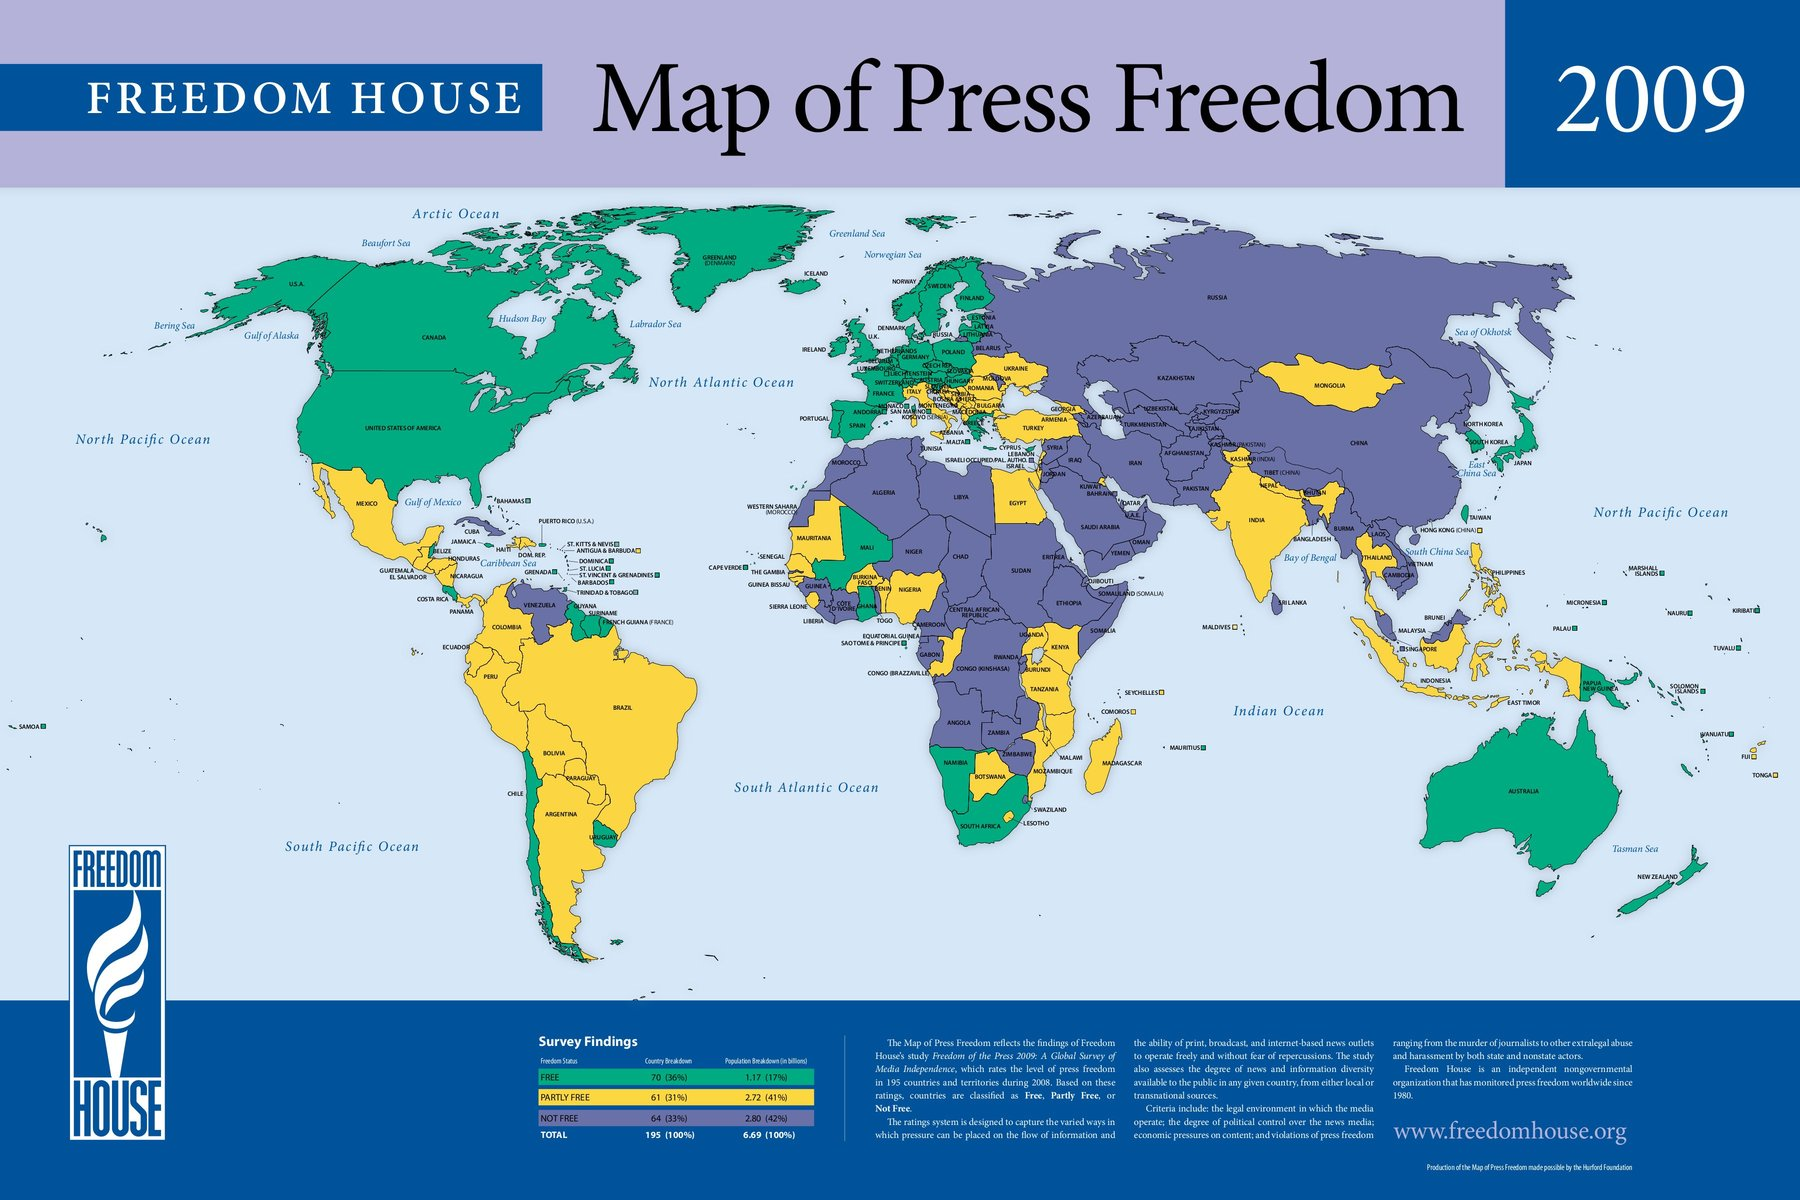 media business in democratic country Democratic countries span the world and the majority of developed nations have democratic political systems north america and europe are both almost fully democratic in terms of the government system used by countries on those continents.